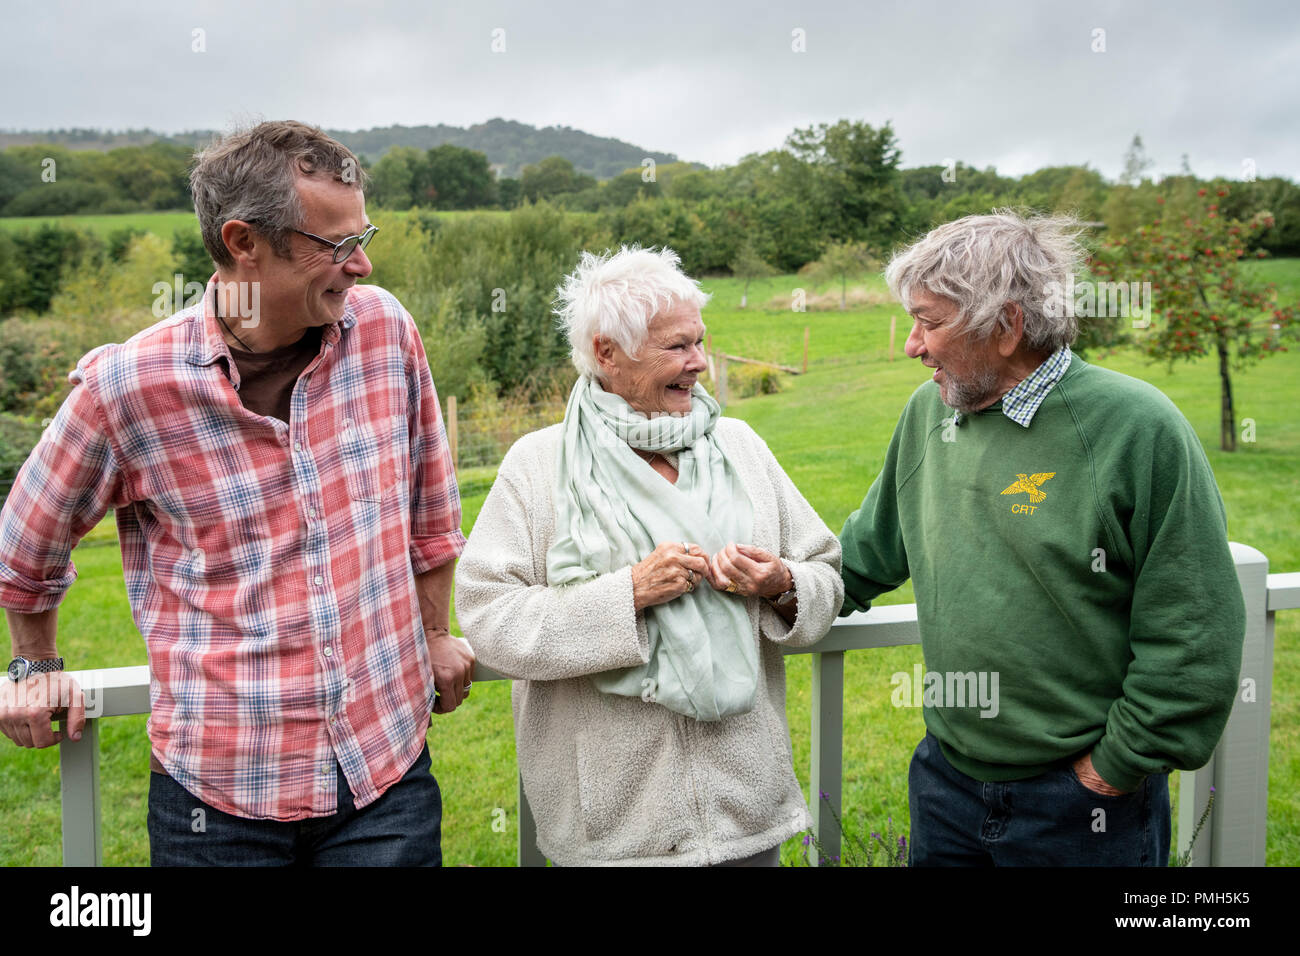 Babers Farm, Marshwood, Dorset UK 18th September 2018. Dame Judi Dench (Trust Patron), Hugh Fearnley-Whittingstall and Robin Page (Trust Chairman) meet at the Countryside Restoration Trust Farm. This was one of several events marking the 25th Anniversary of the Trust whose aim is for conservation improvements to be carried out alongside practical farming and land management. Credit: Julian Eales/Alamy Live News - Stock Image